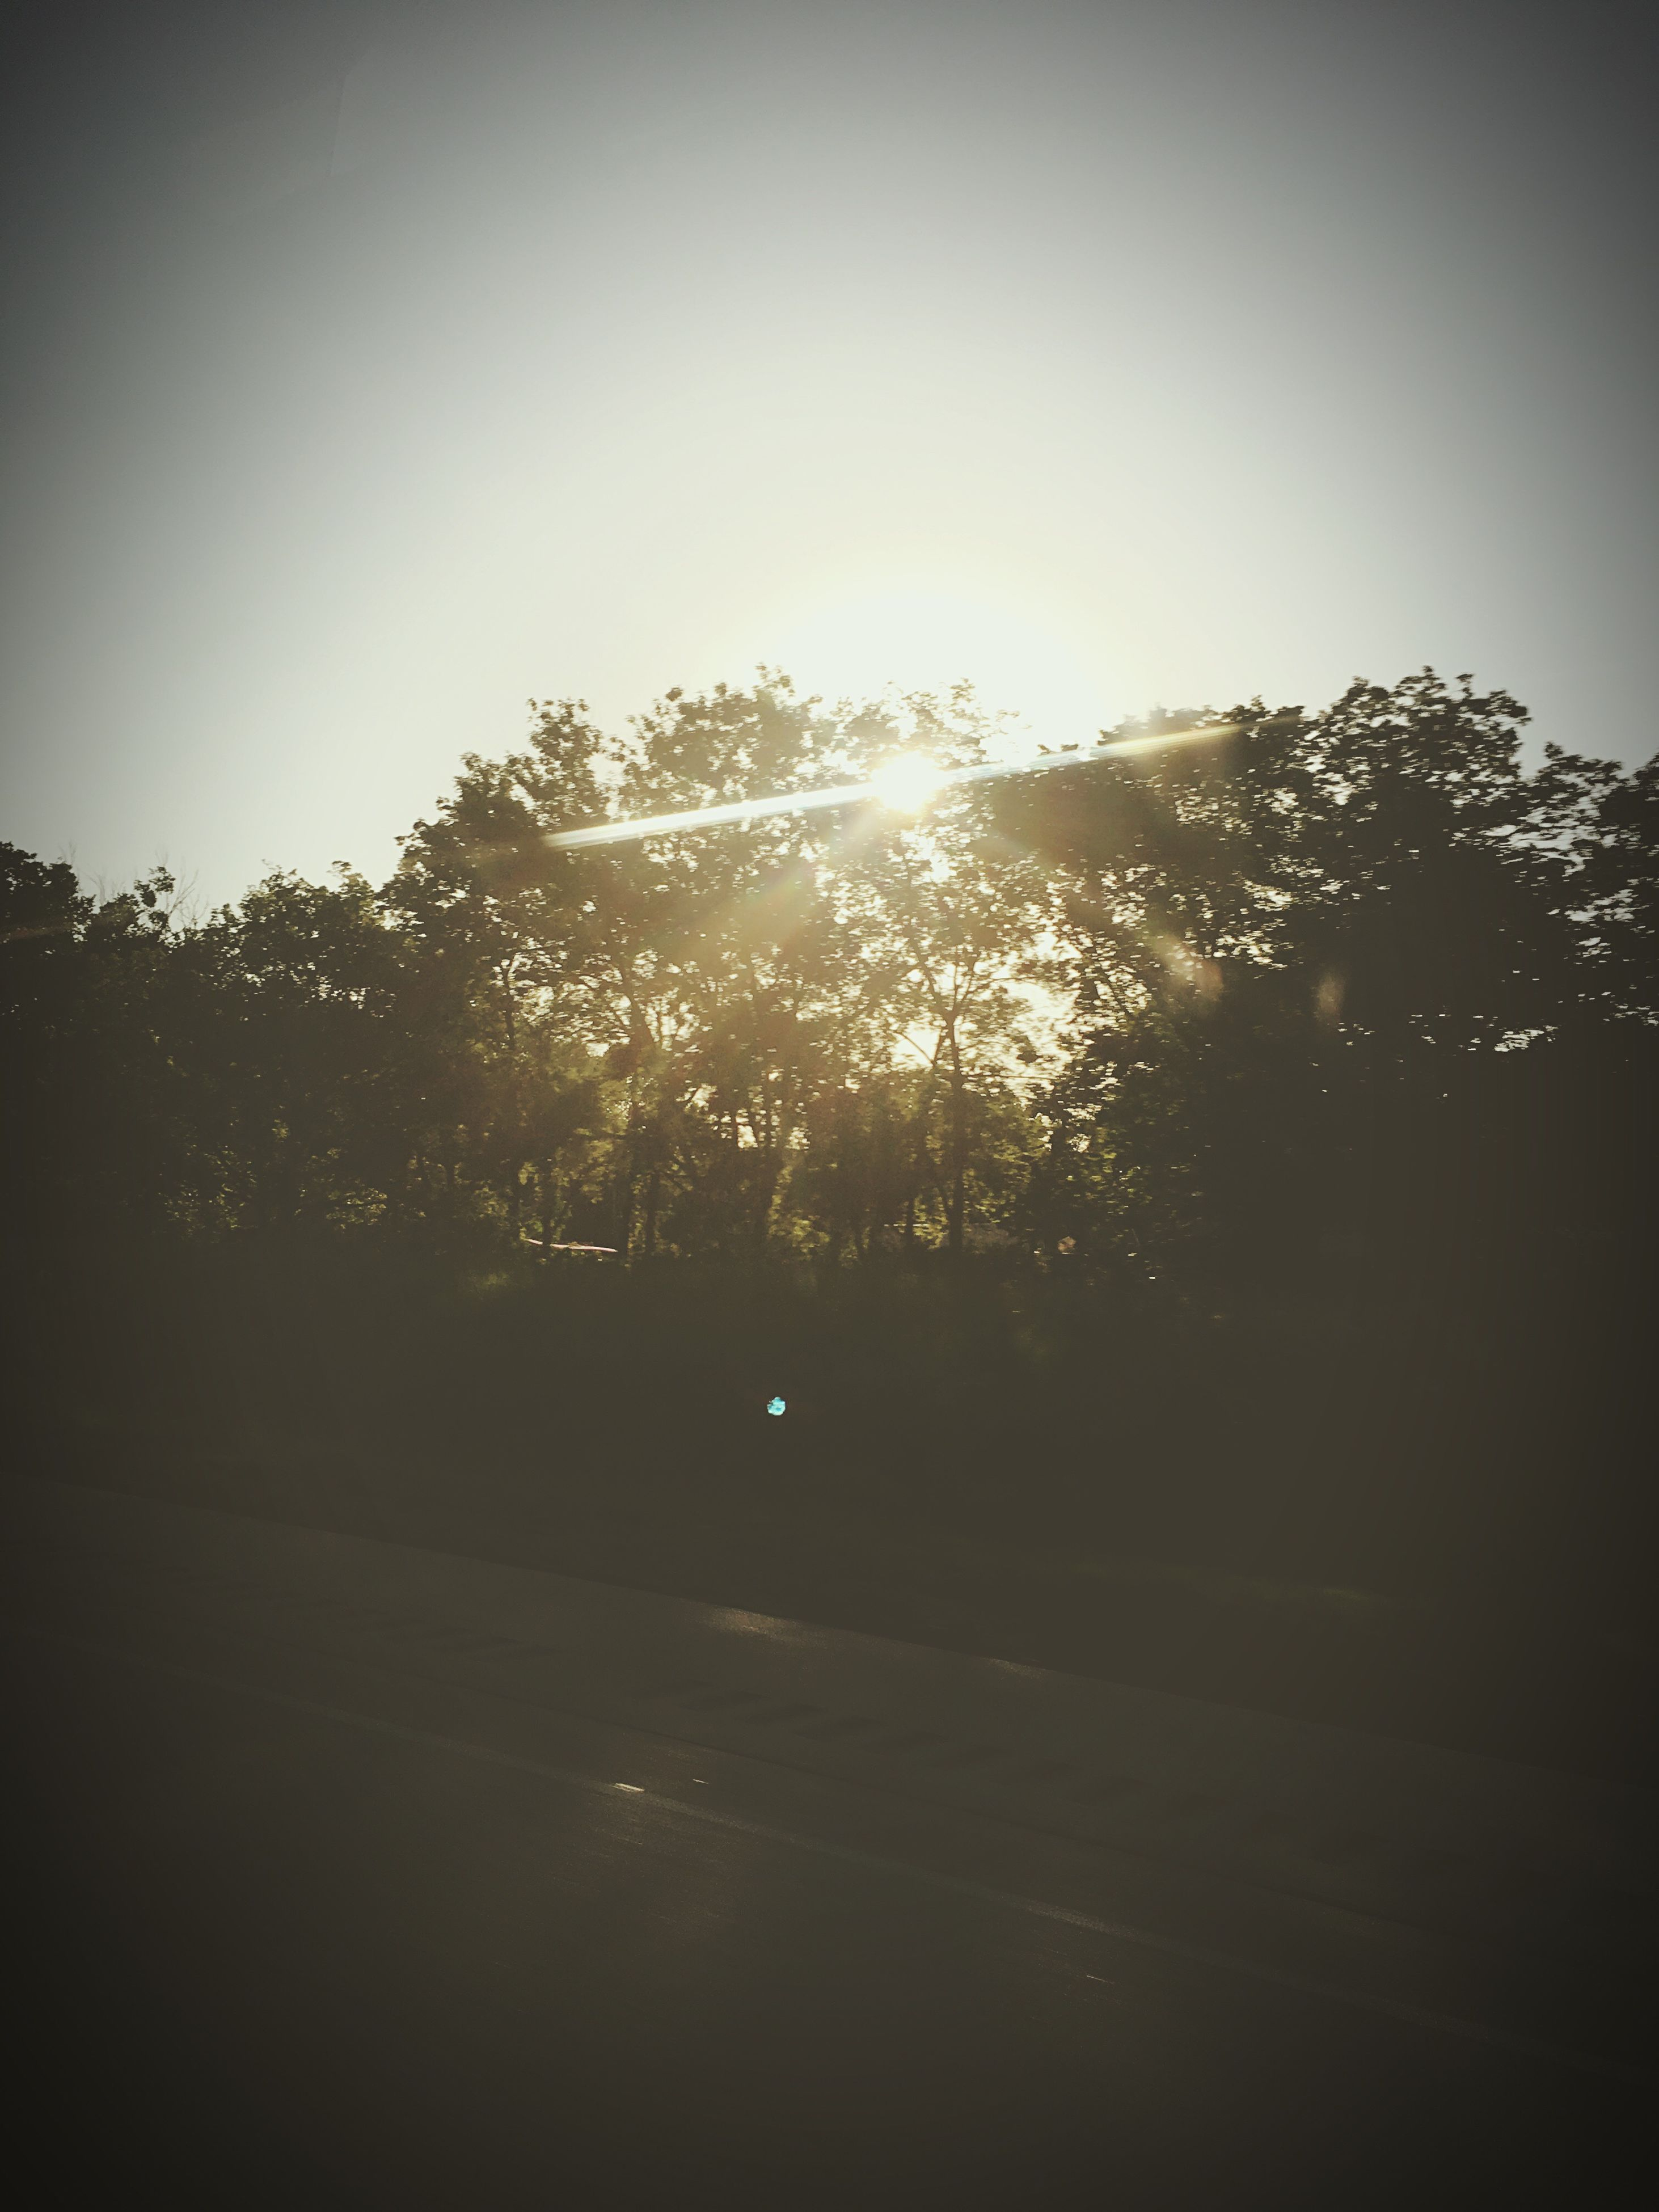 tree, silhouette, clear sky, sun, tranquility, sunlight, sunset, copy space, tranquil scene, nature, sky, beauty in nature, road, scenics, auto post production filter, sunbeam, dark, outdoors, landscape, growth